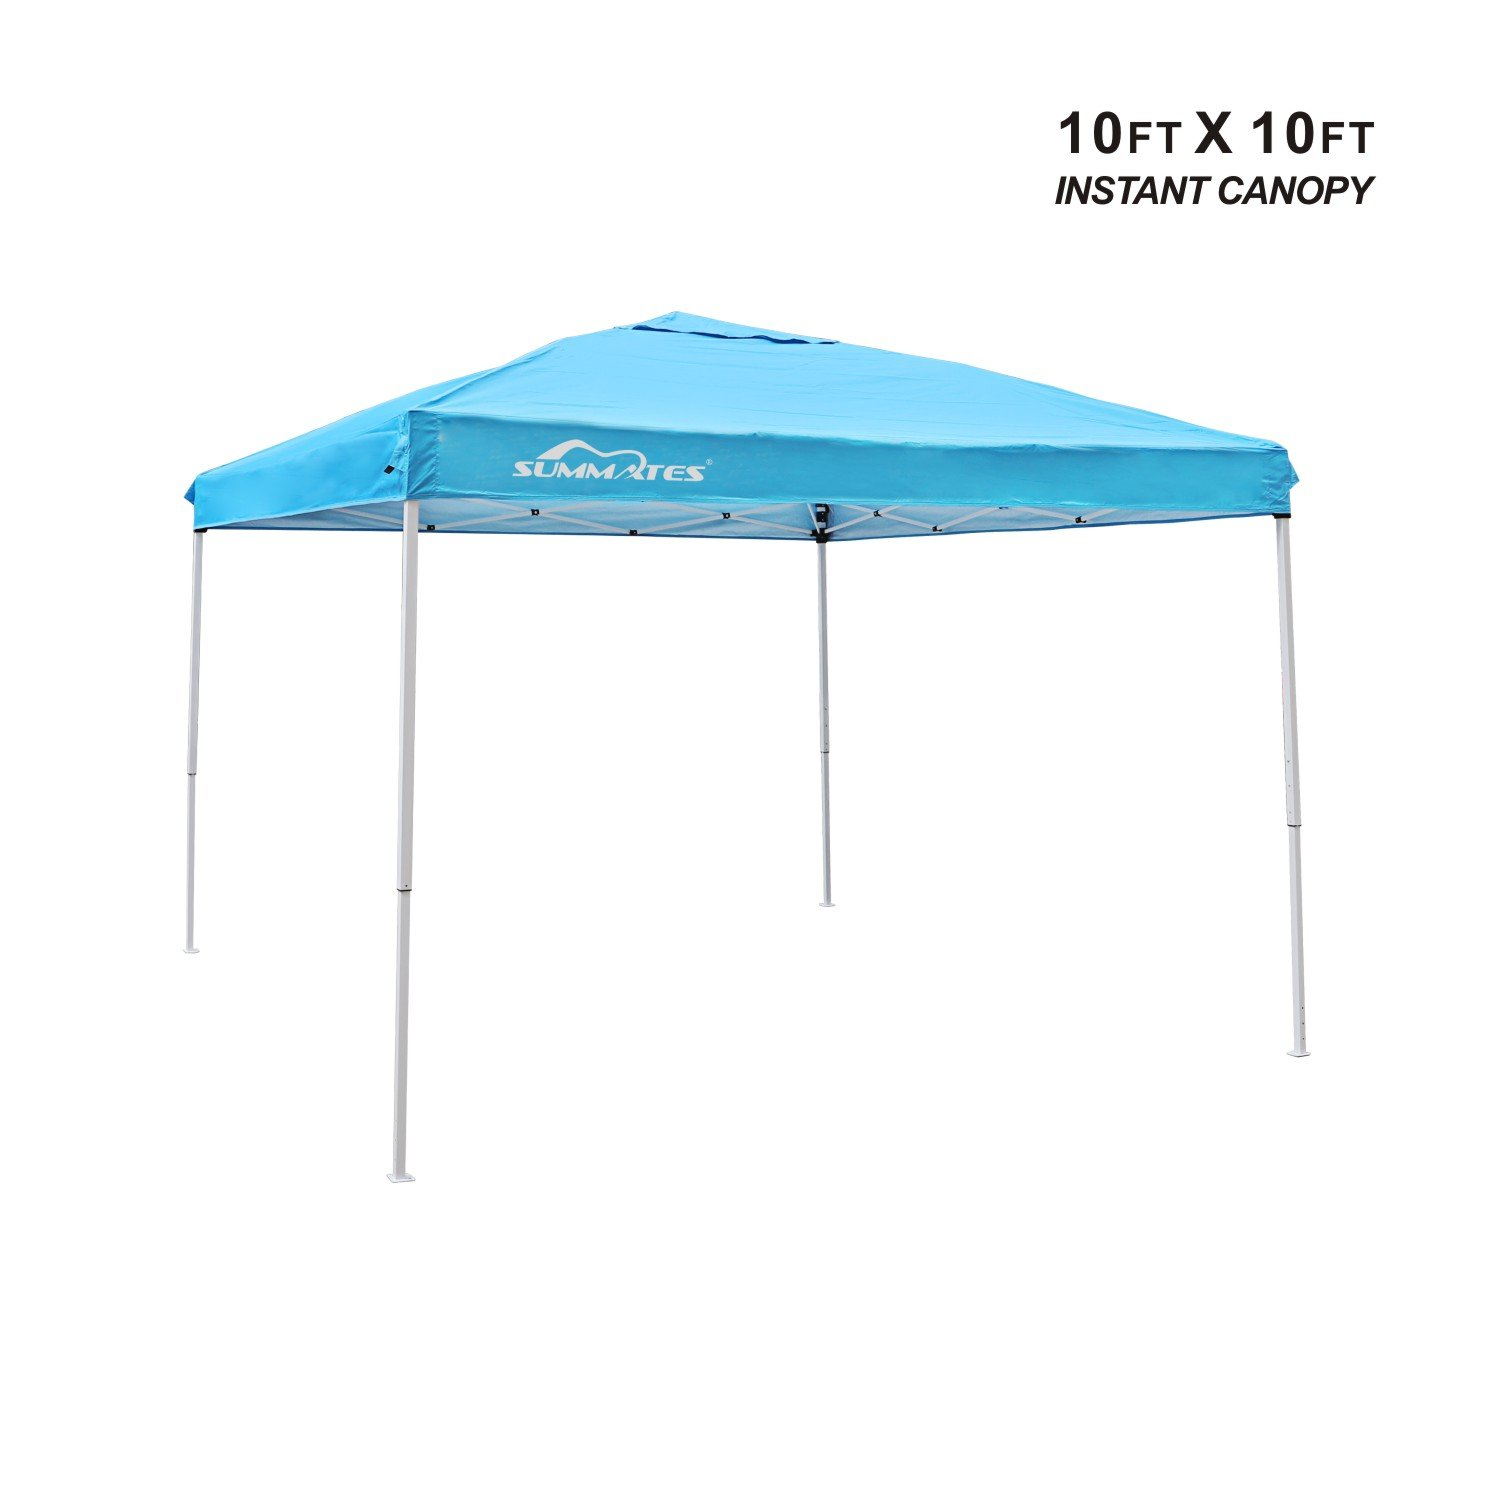 Summates 10X10ft Instant Canopy,Pop Up Canopy,Booth Canopy,Color Light Blue,Royal Blue,Khaki,Green,Gray Aavilable (10 x 10ft, Pacific Blue) by Summates (Image #2)